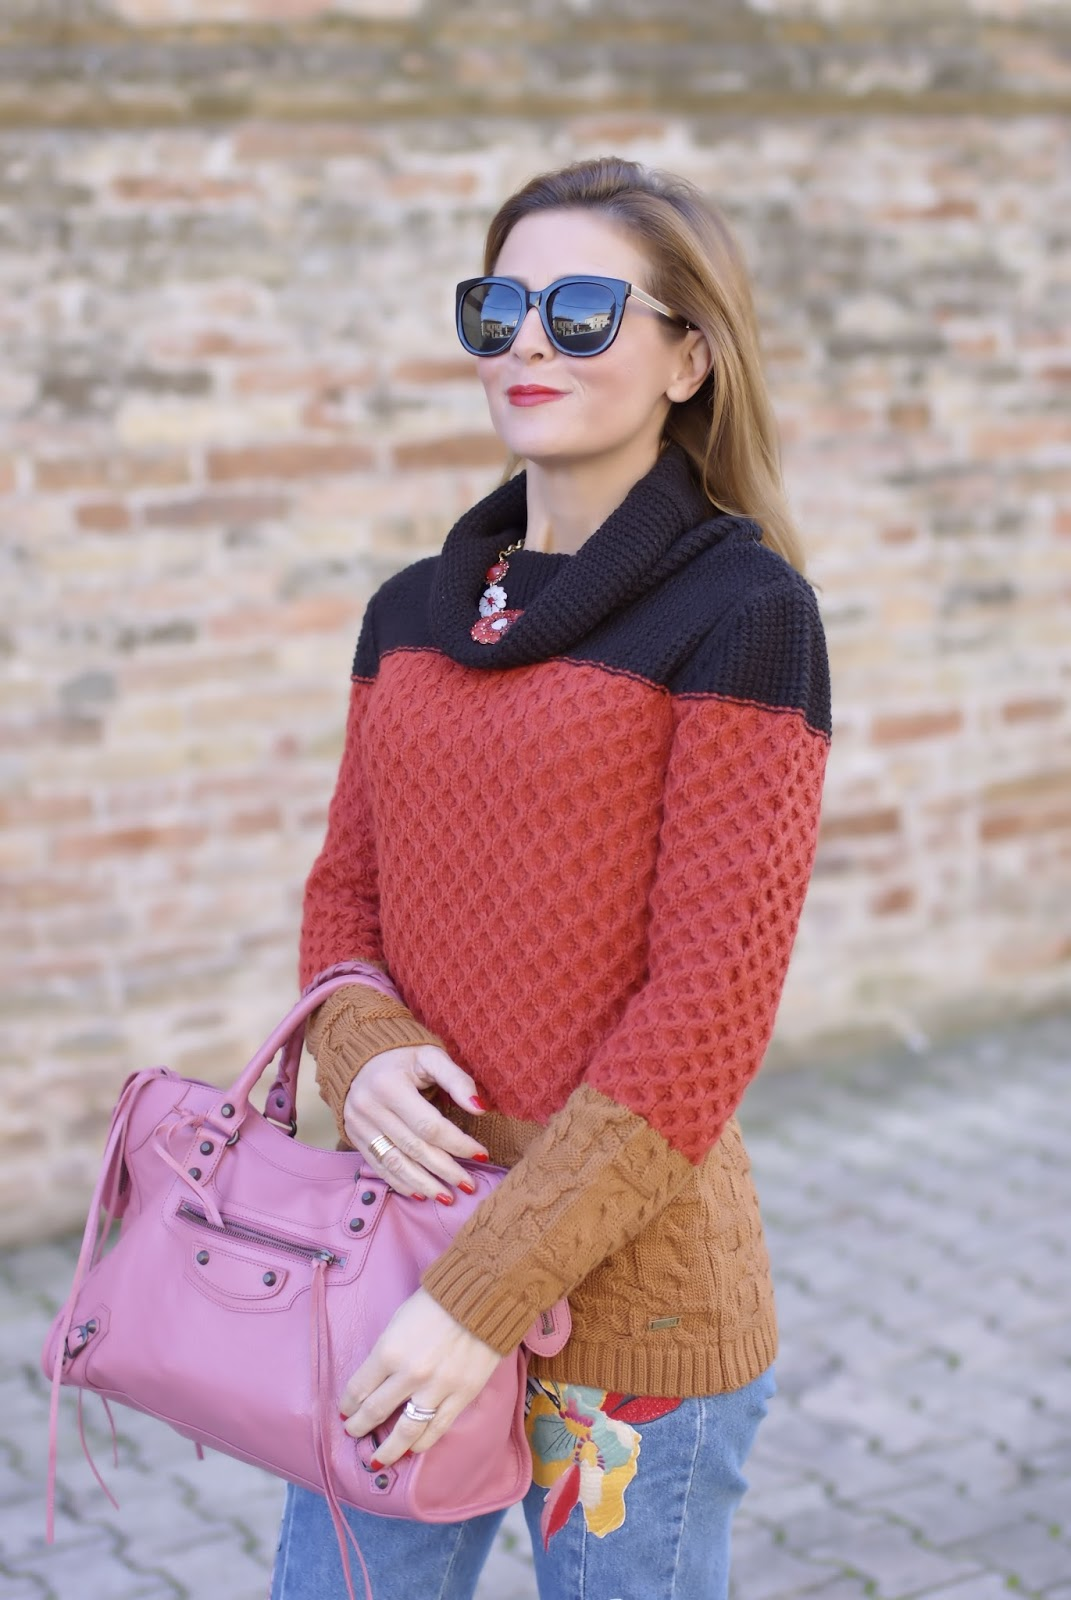 Winter Seventies Fashion with Smash! Gracian sweater and pink Balenciaga bag on Fashion and Cookies fashion blog, fashion blogger style